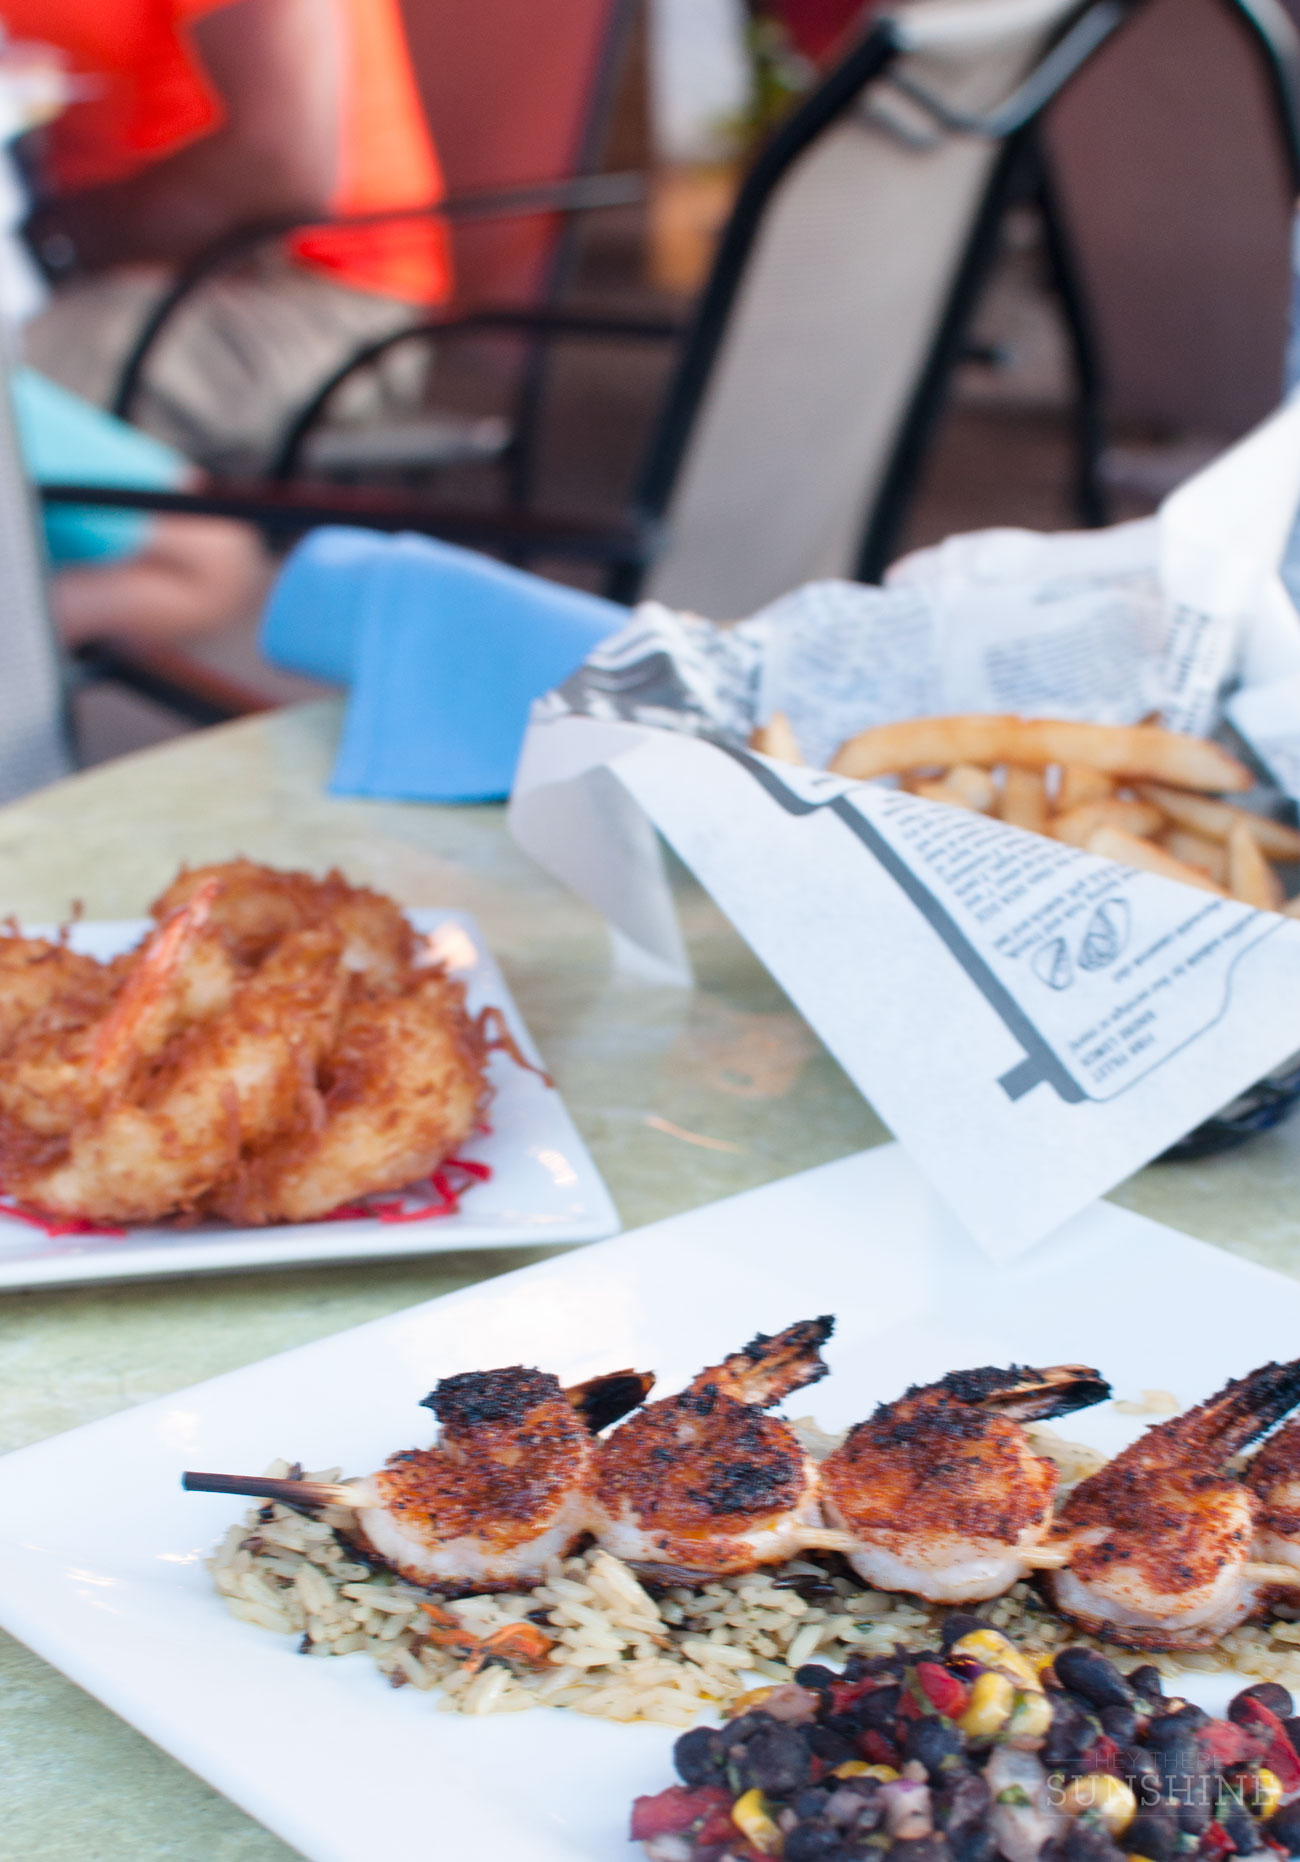 Two kinds of shrimp and fries from Scott's Fish Market in Hilton Head, SC.